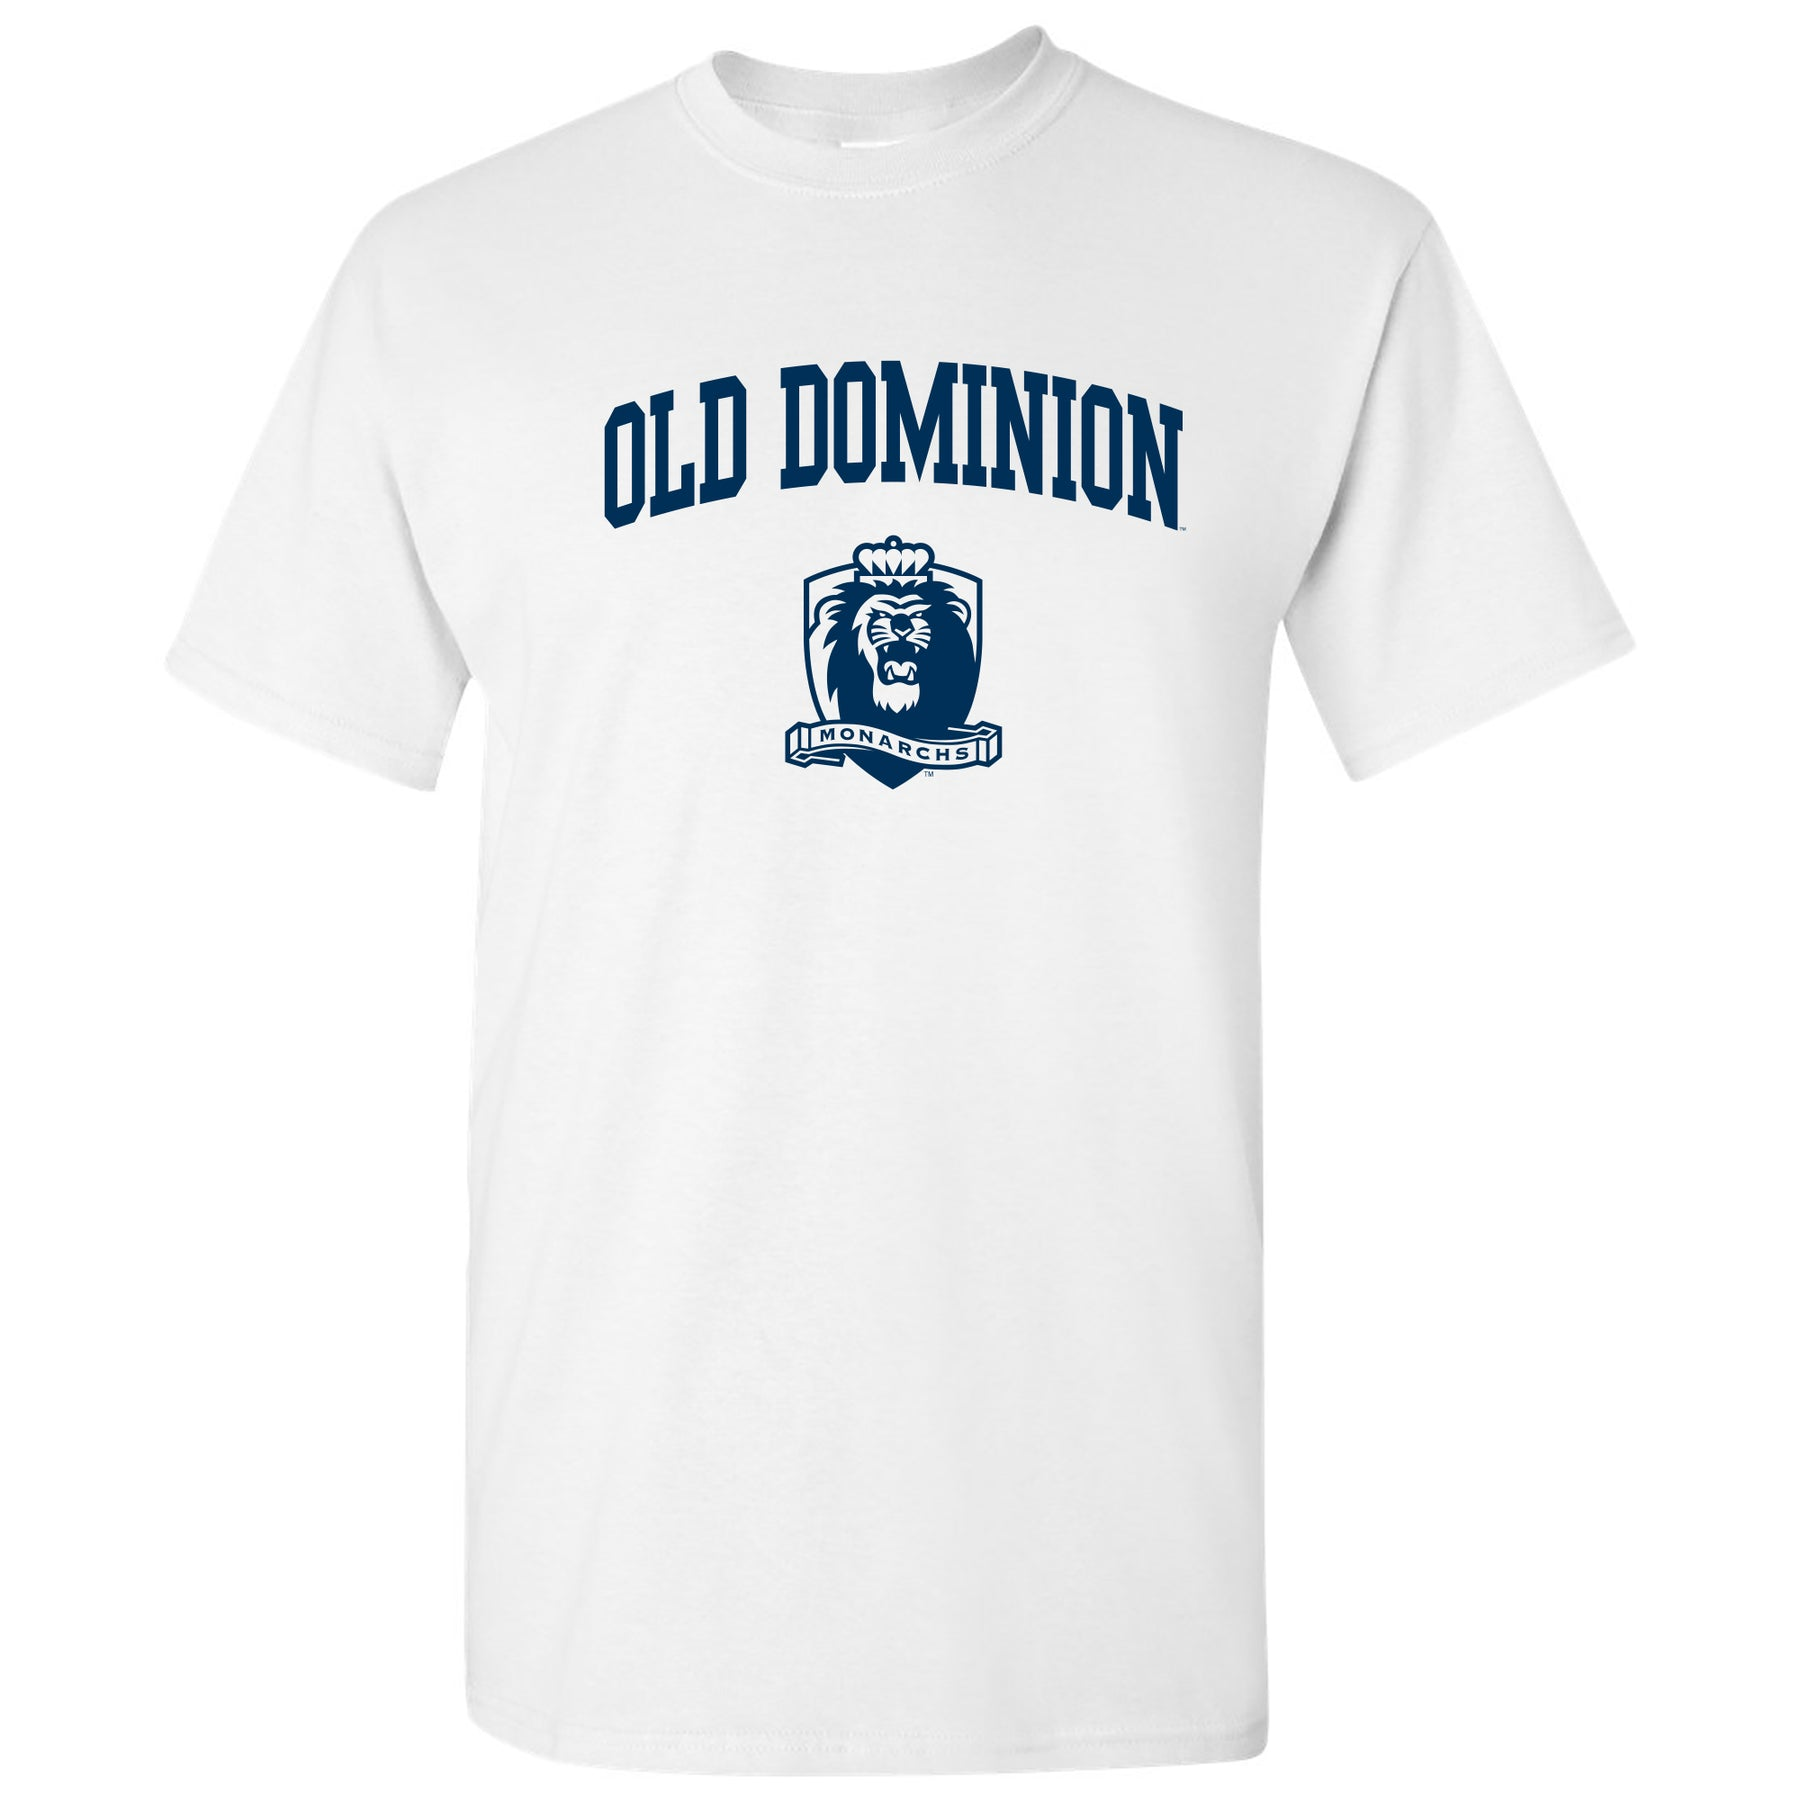 NCAA Old Dominion Monarchs T-Shirt V2